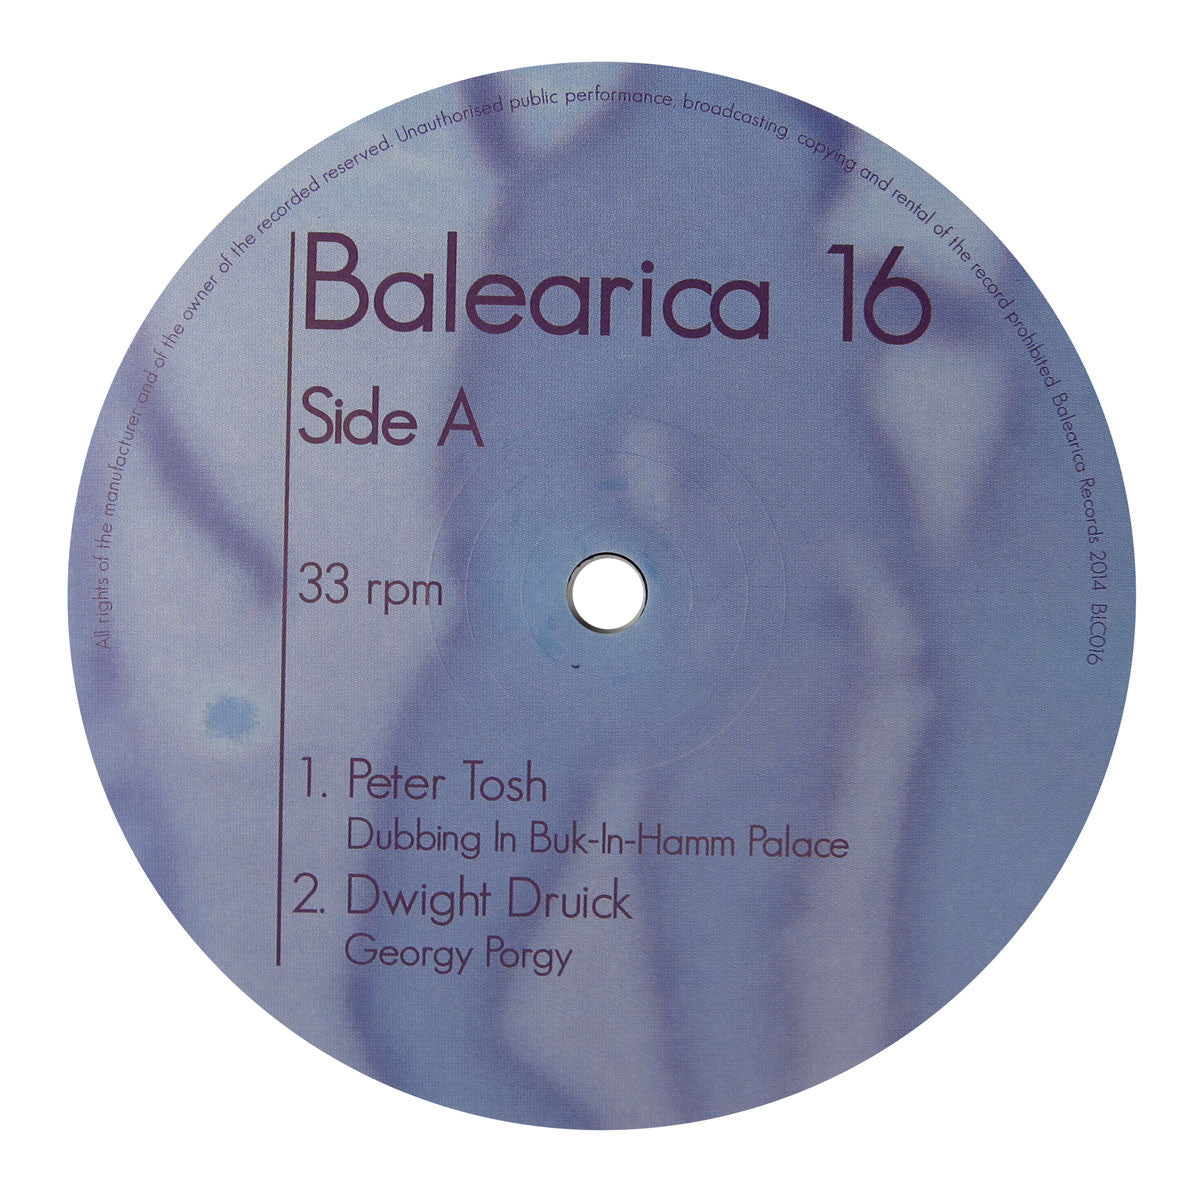 Balearica Records: Balearica #16 (Peter Tosh, Georgy Porgy) Vinyl 12""